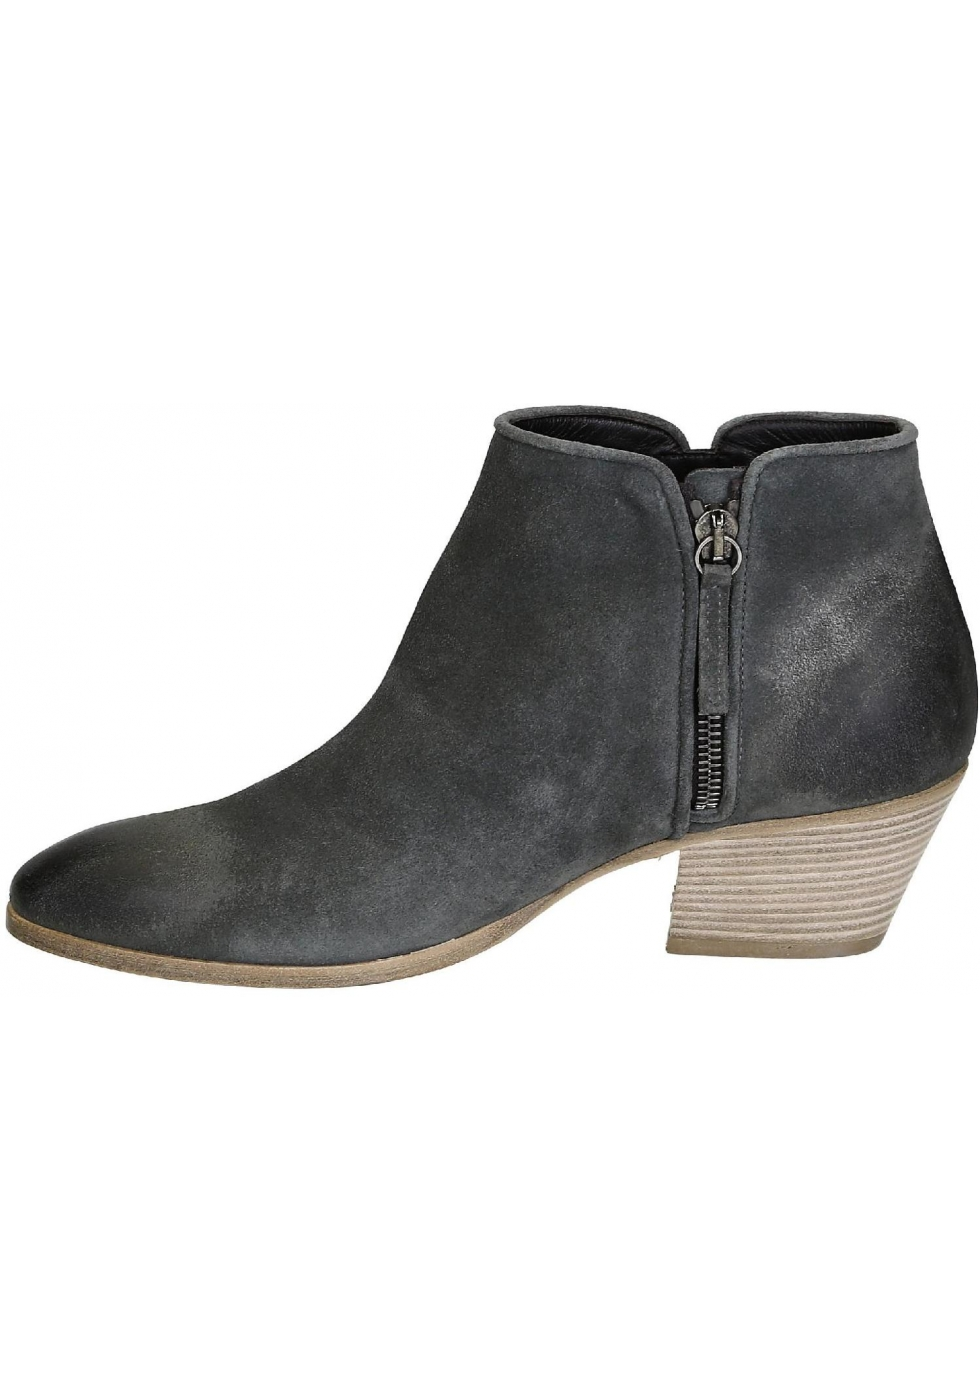 7004d0340 Giuseppe Zanotti women s ankle boots in gray suede leather - Italian ...